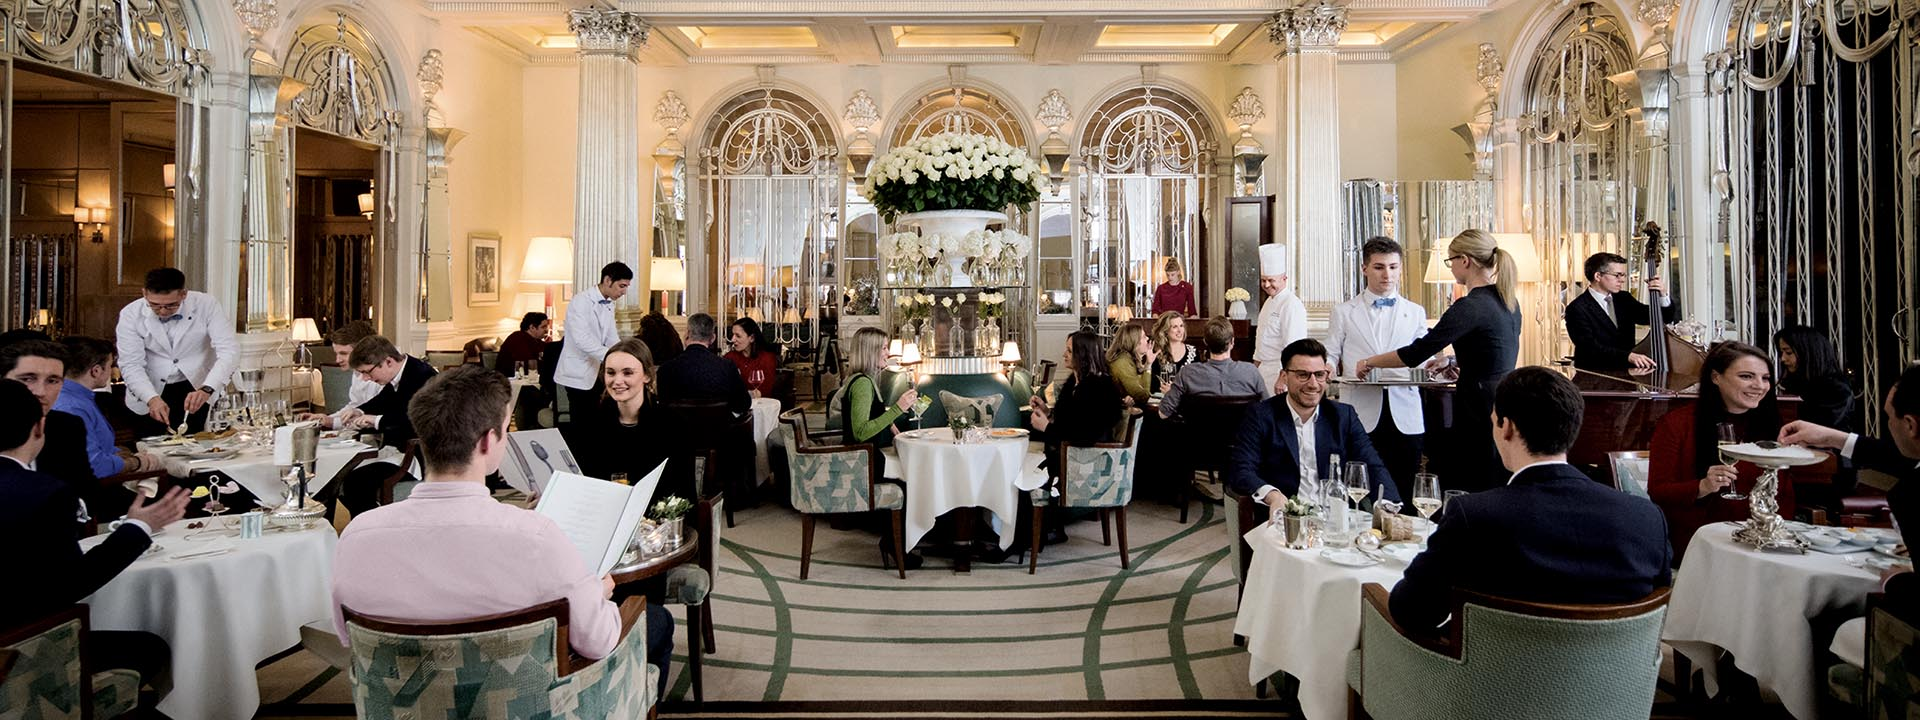 The Foyer & Reading Room restaurant in Claridge's in Mayfair full of guests at Claridge's